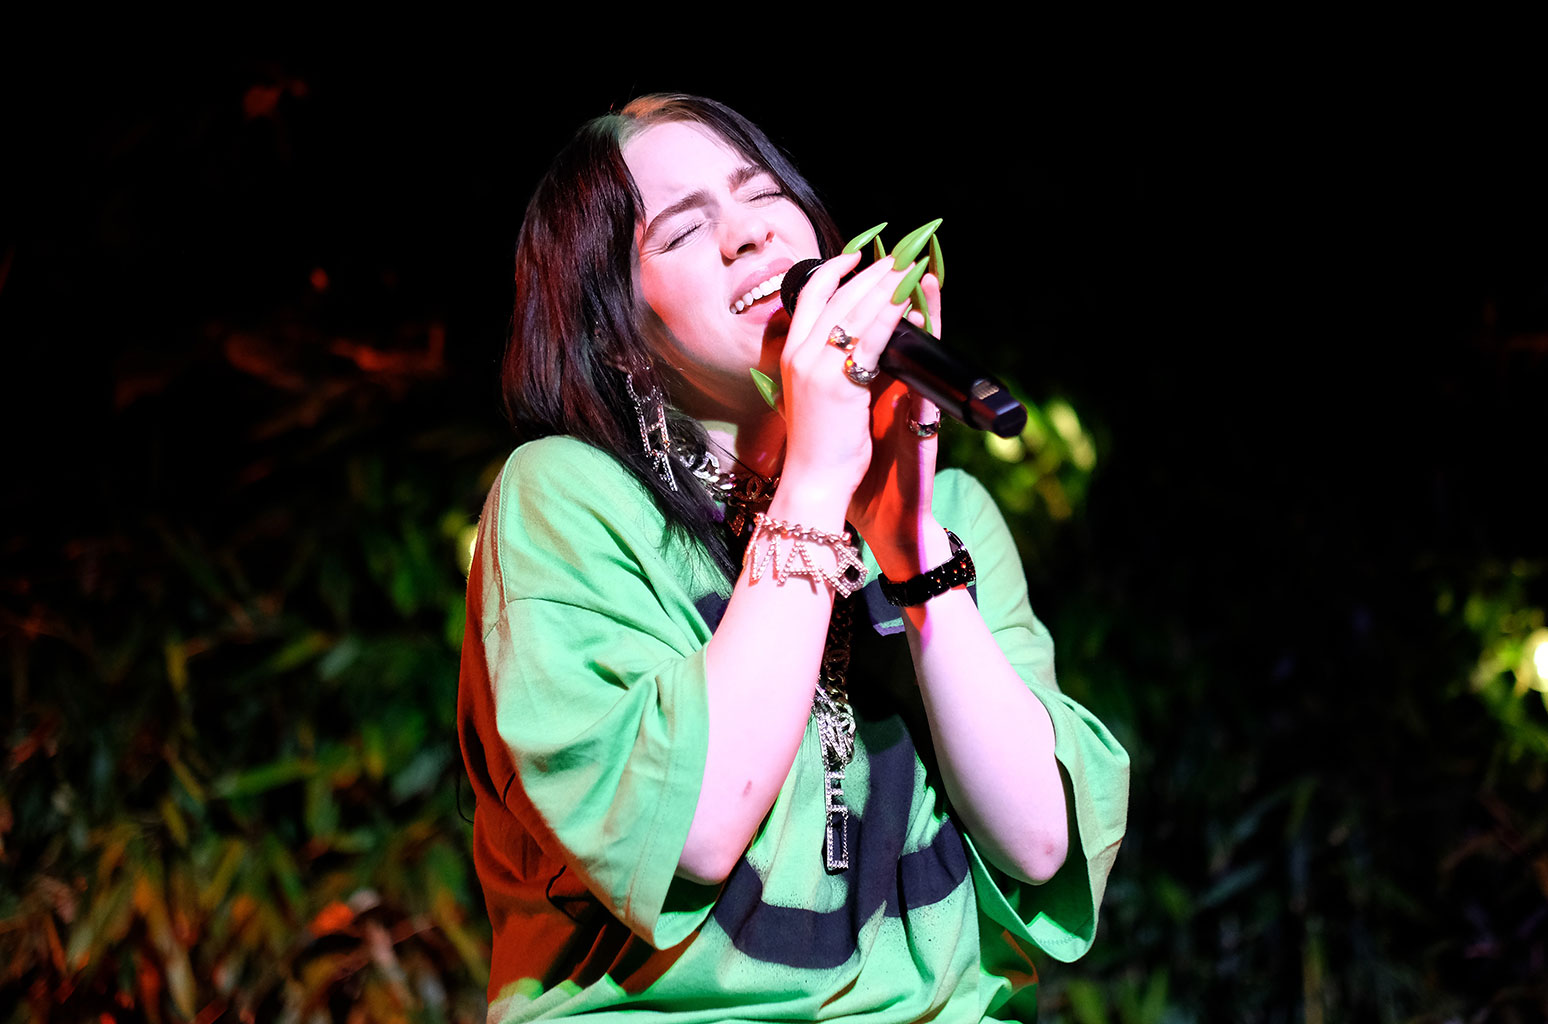 AT 2020 GRAMMYS, WHO COULD BE BILLIE EILISH'S COMPETITION